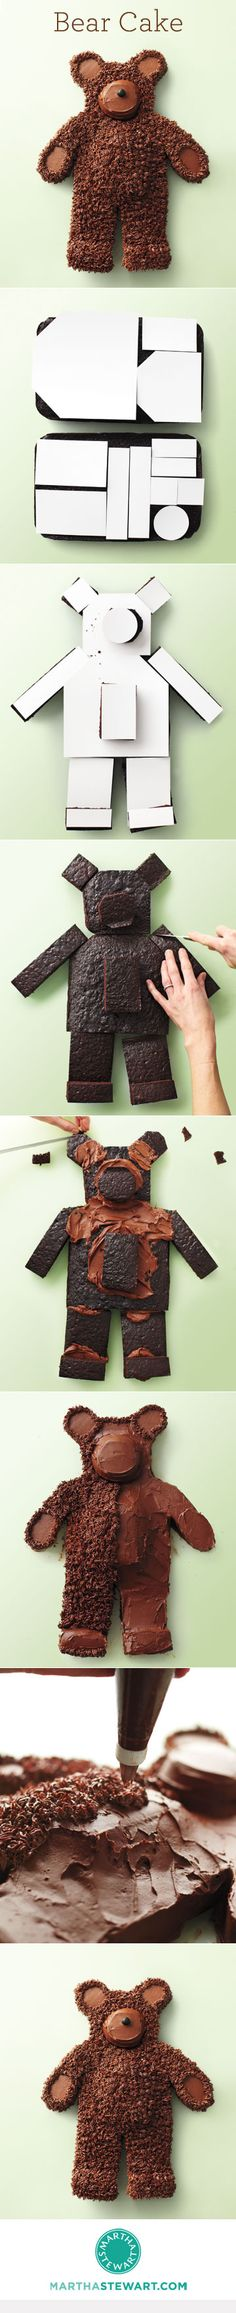 How to Make a Teddy Bear Cake